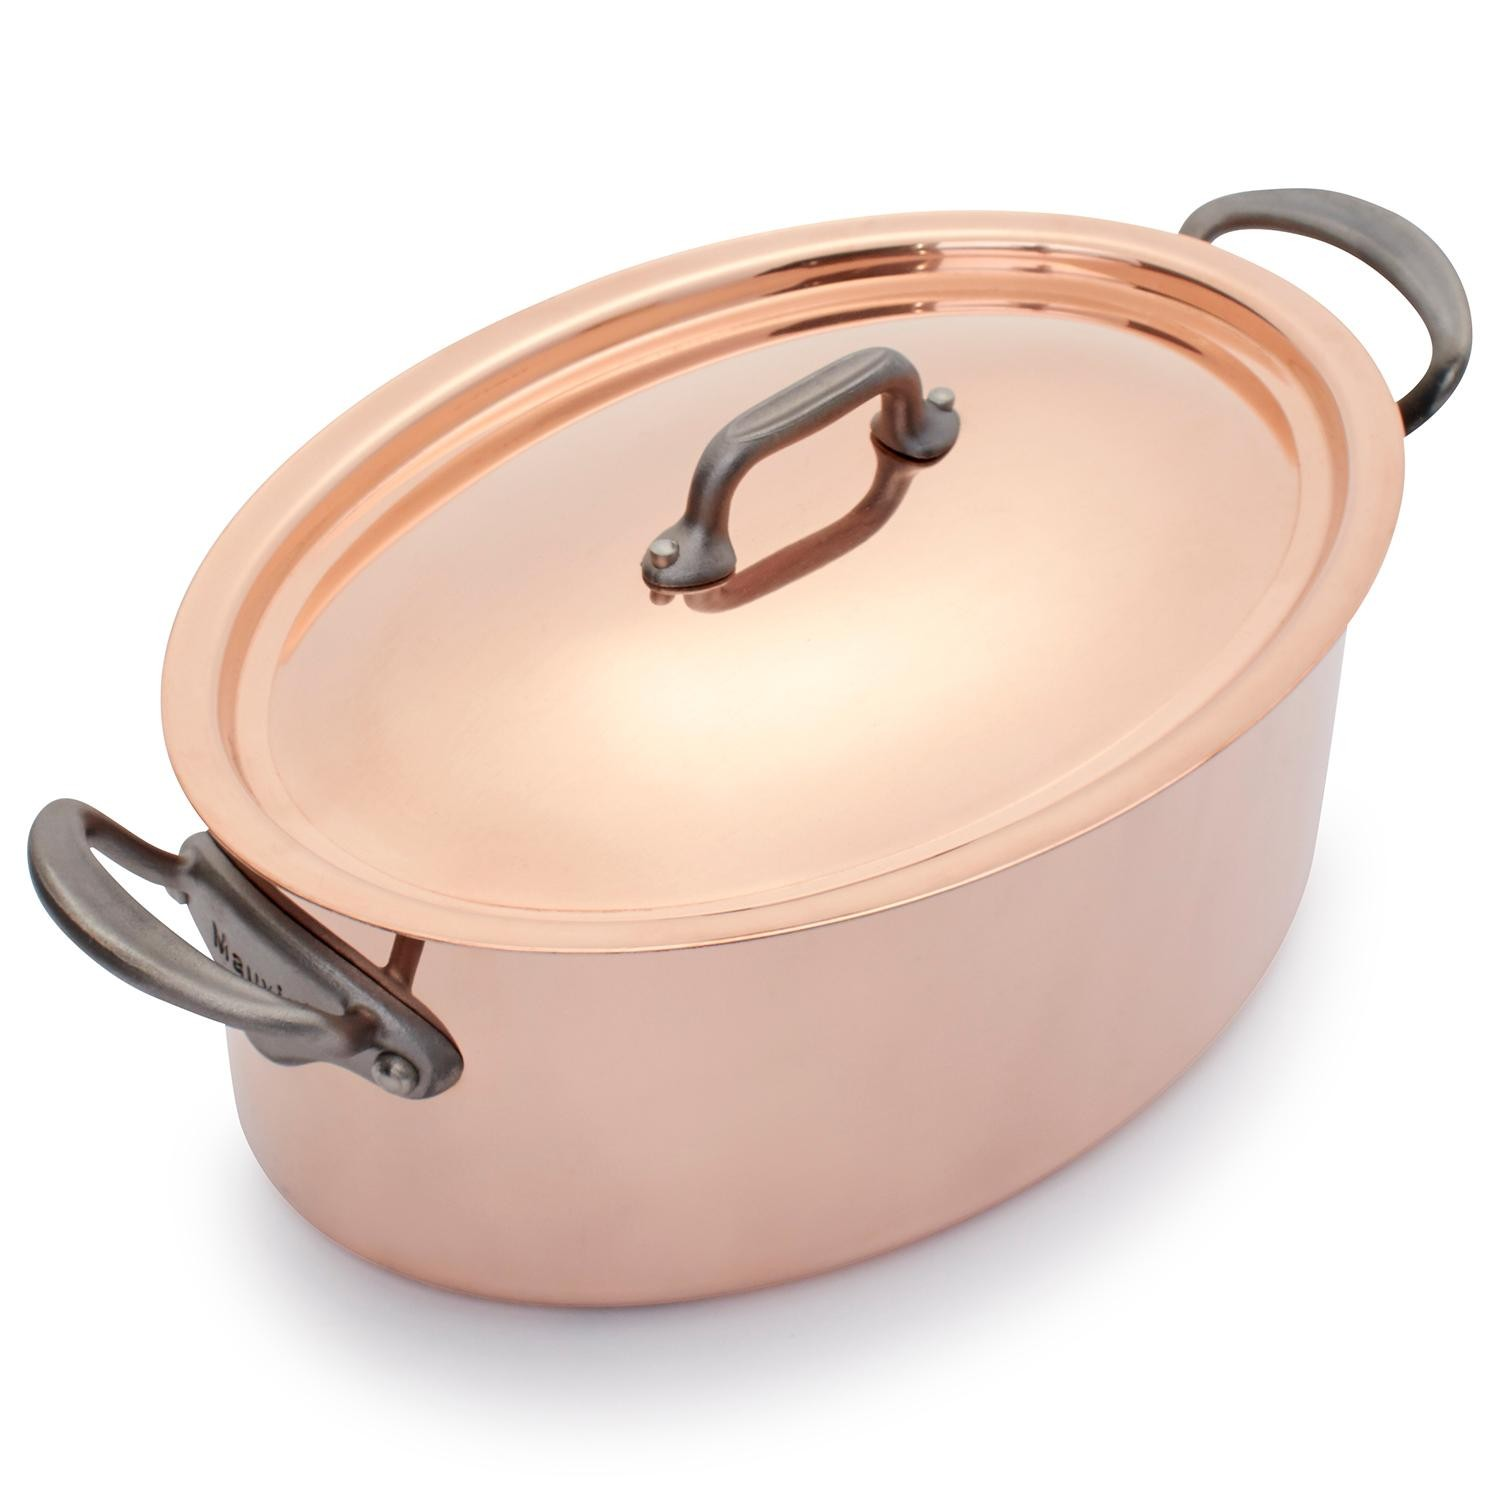 <p>The exclusive to Sur La Table Jacques Pépin Limited Edition Copper Oval Dutch Oven holds 4 quarts and is hand made in limited quantities. This heritage-quality Dutch oven is perfect for everything from soups and stews to pork loin and pot roast. (Image: Sur La Table){&amp;nbsp;}</p>